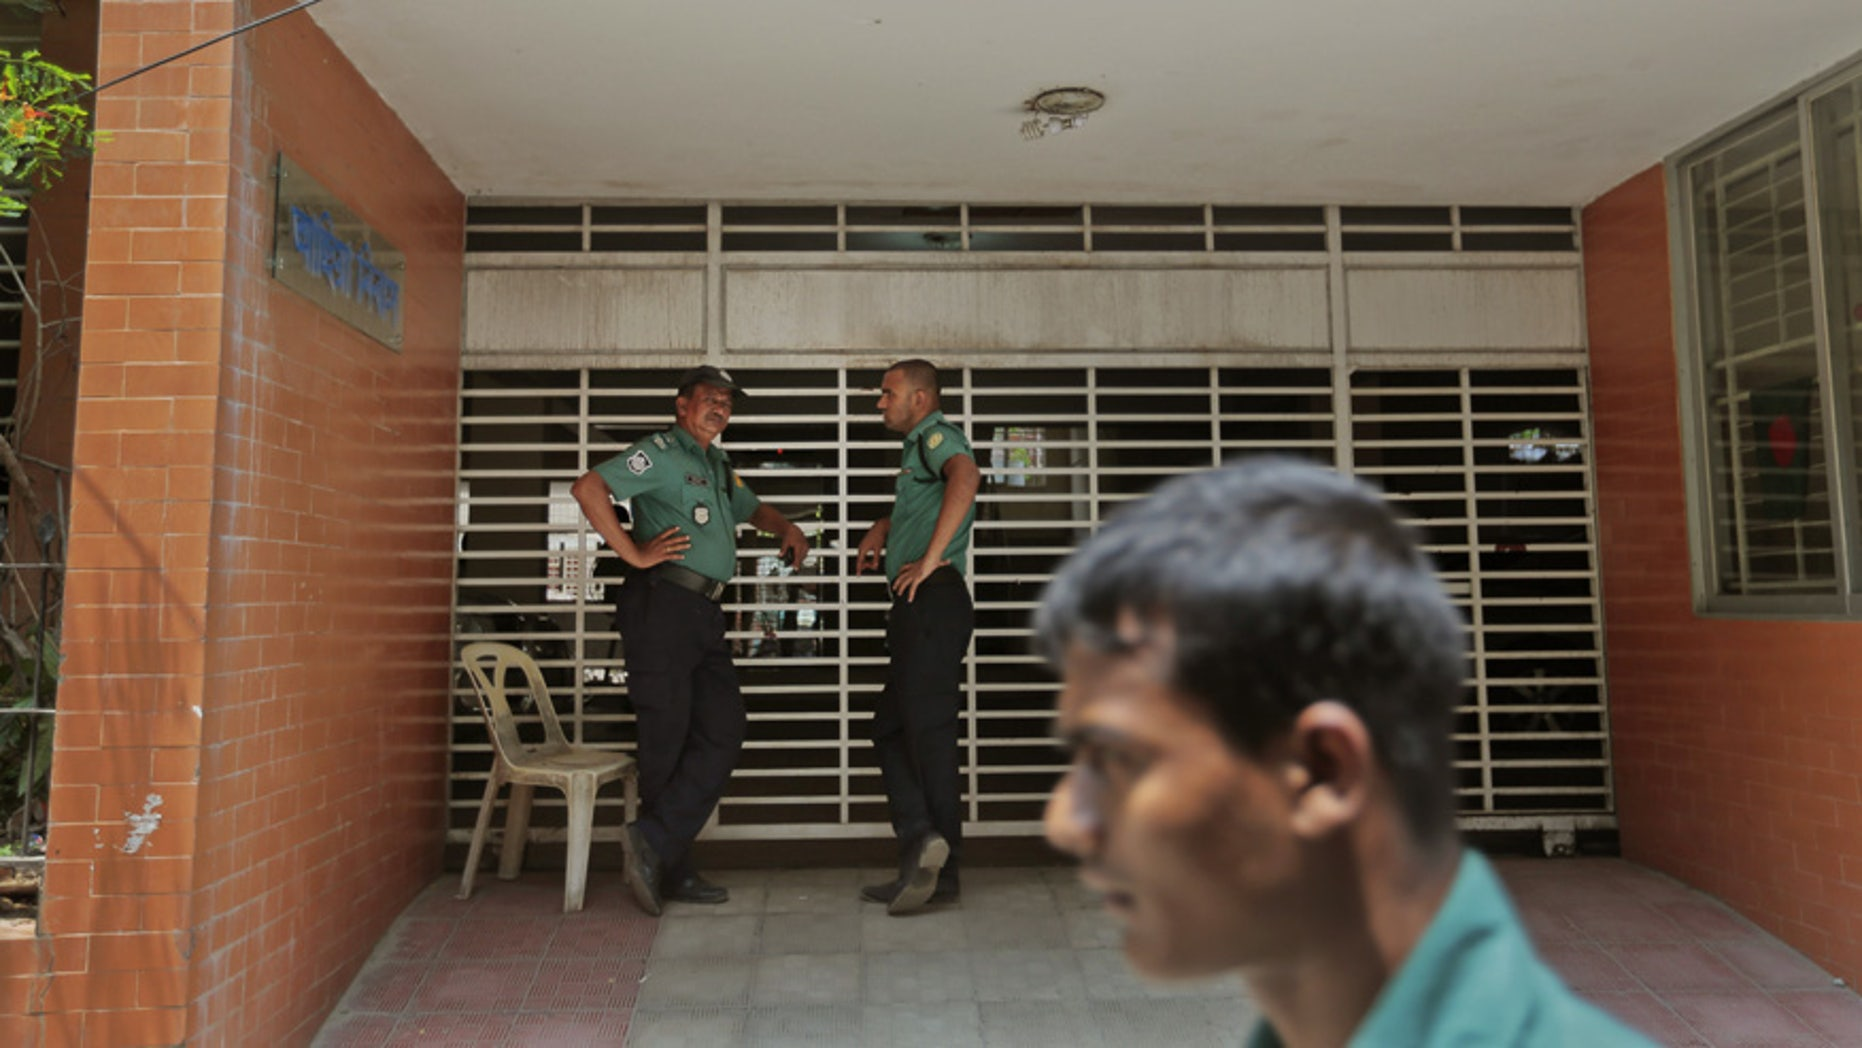 April 26, 2016: Bangladeshi policemen stand guard at the entrance to the building where two people were stabbed to death by unidentified assailants in Dhaka, Bangladesh.